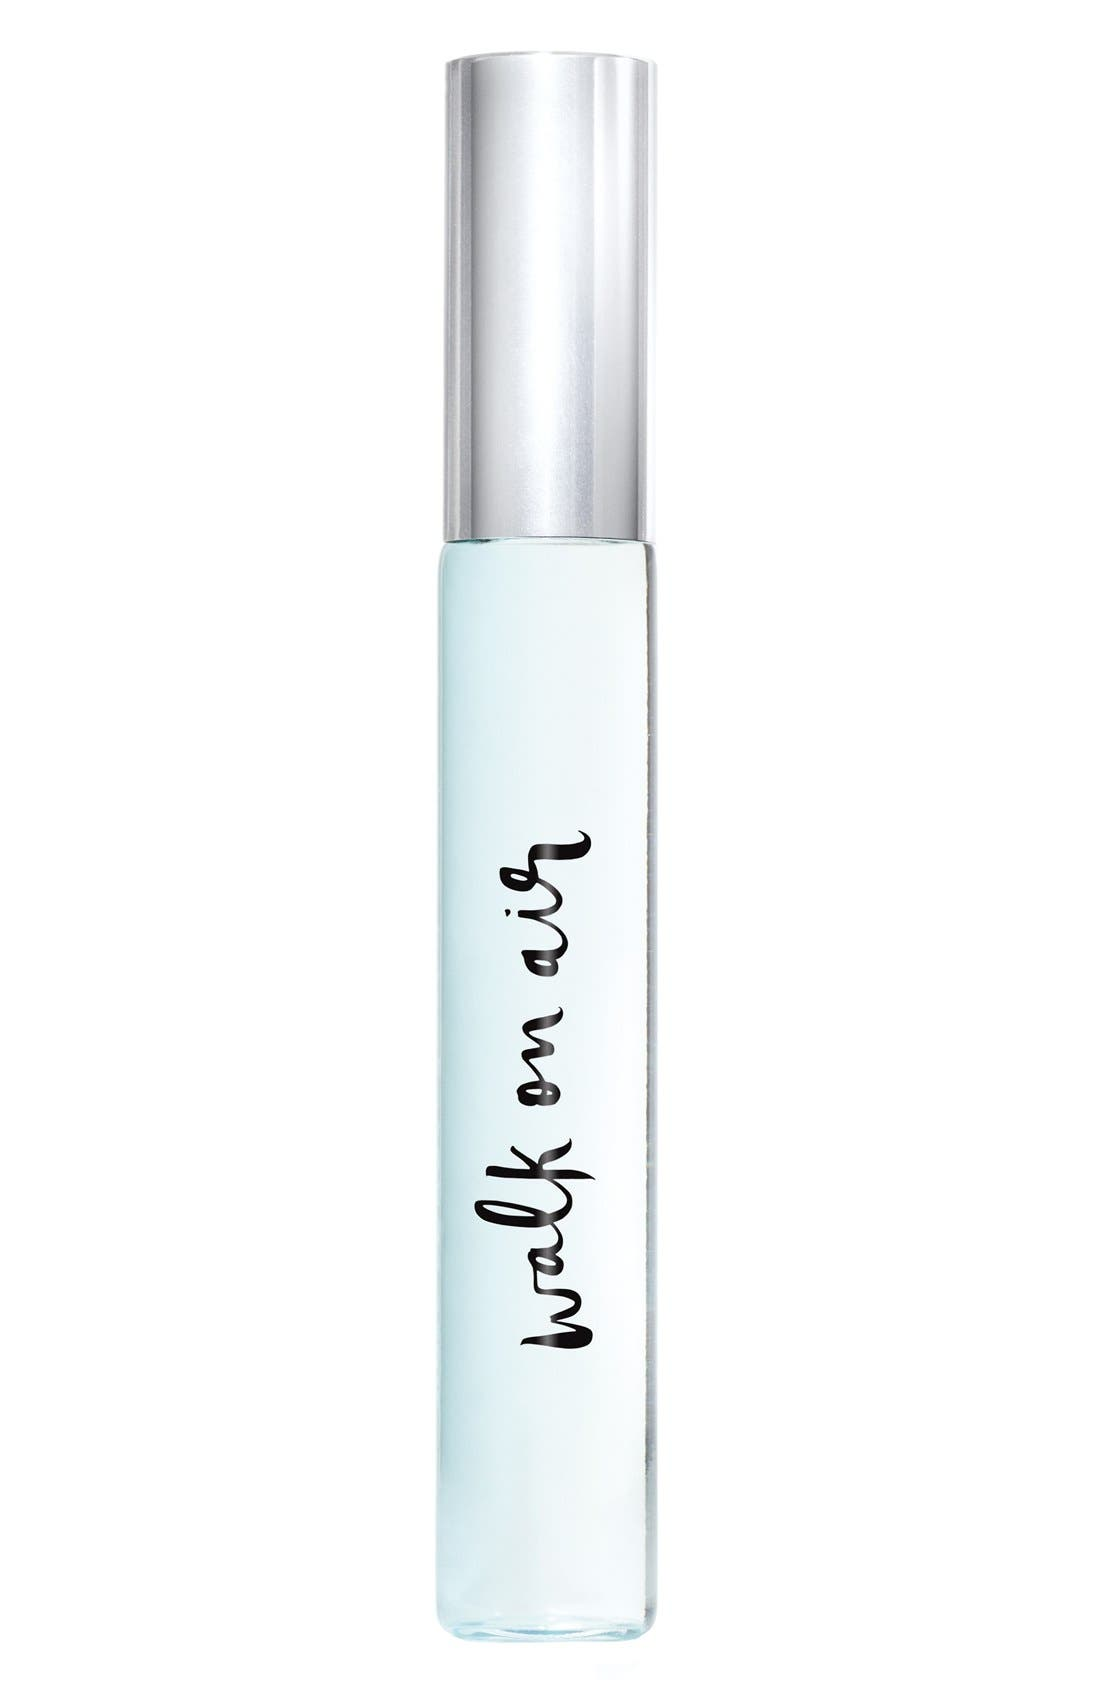 KATE SPADE NEW YORK,                             'walk on air' eau de parfum rollerball,                             Alternate thumbnail 5, color,                             NO COLOR